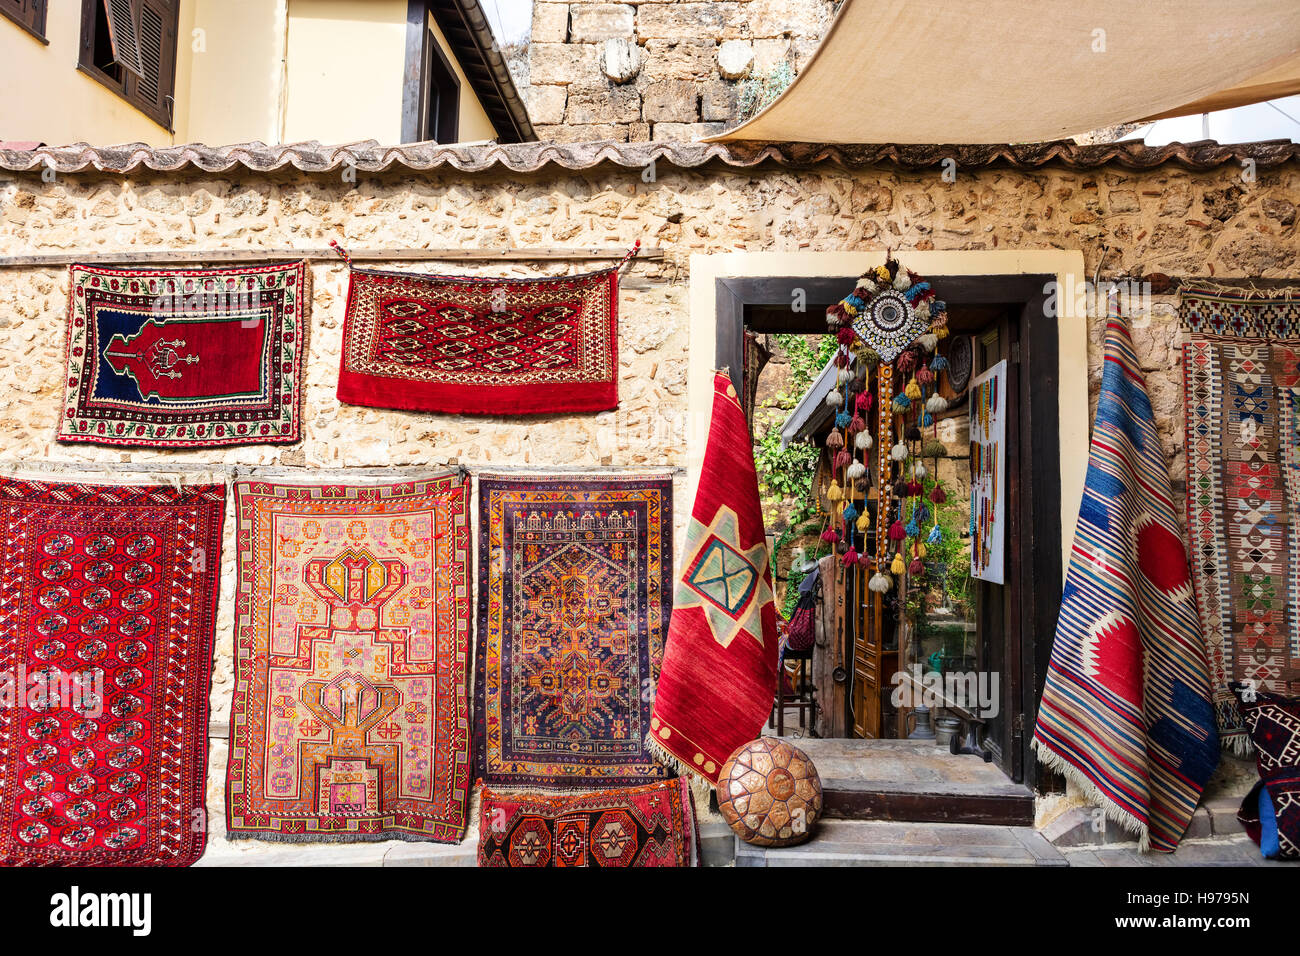 Eastern town street shopping for carpets and antiques. - Stock Image